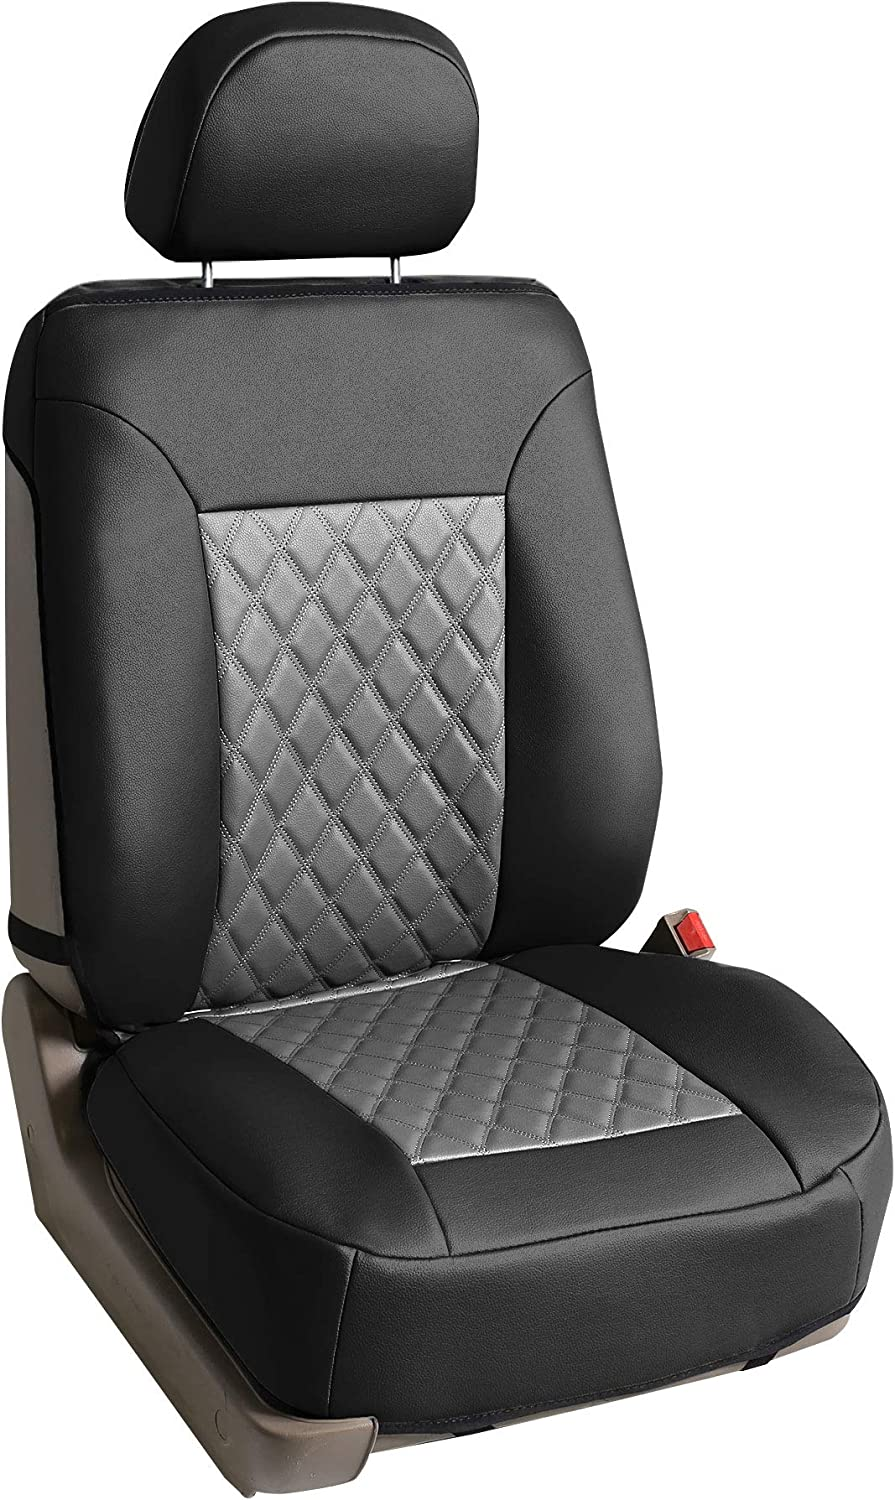 Beige//Black FH-FB063115, Fit Most Car, Truck, Suv, or Van FH Group Universal Fit Full Set Cloth Car Seat Cover with Piping Airbag /& Split Ready,